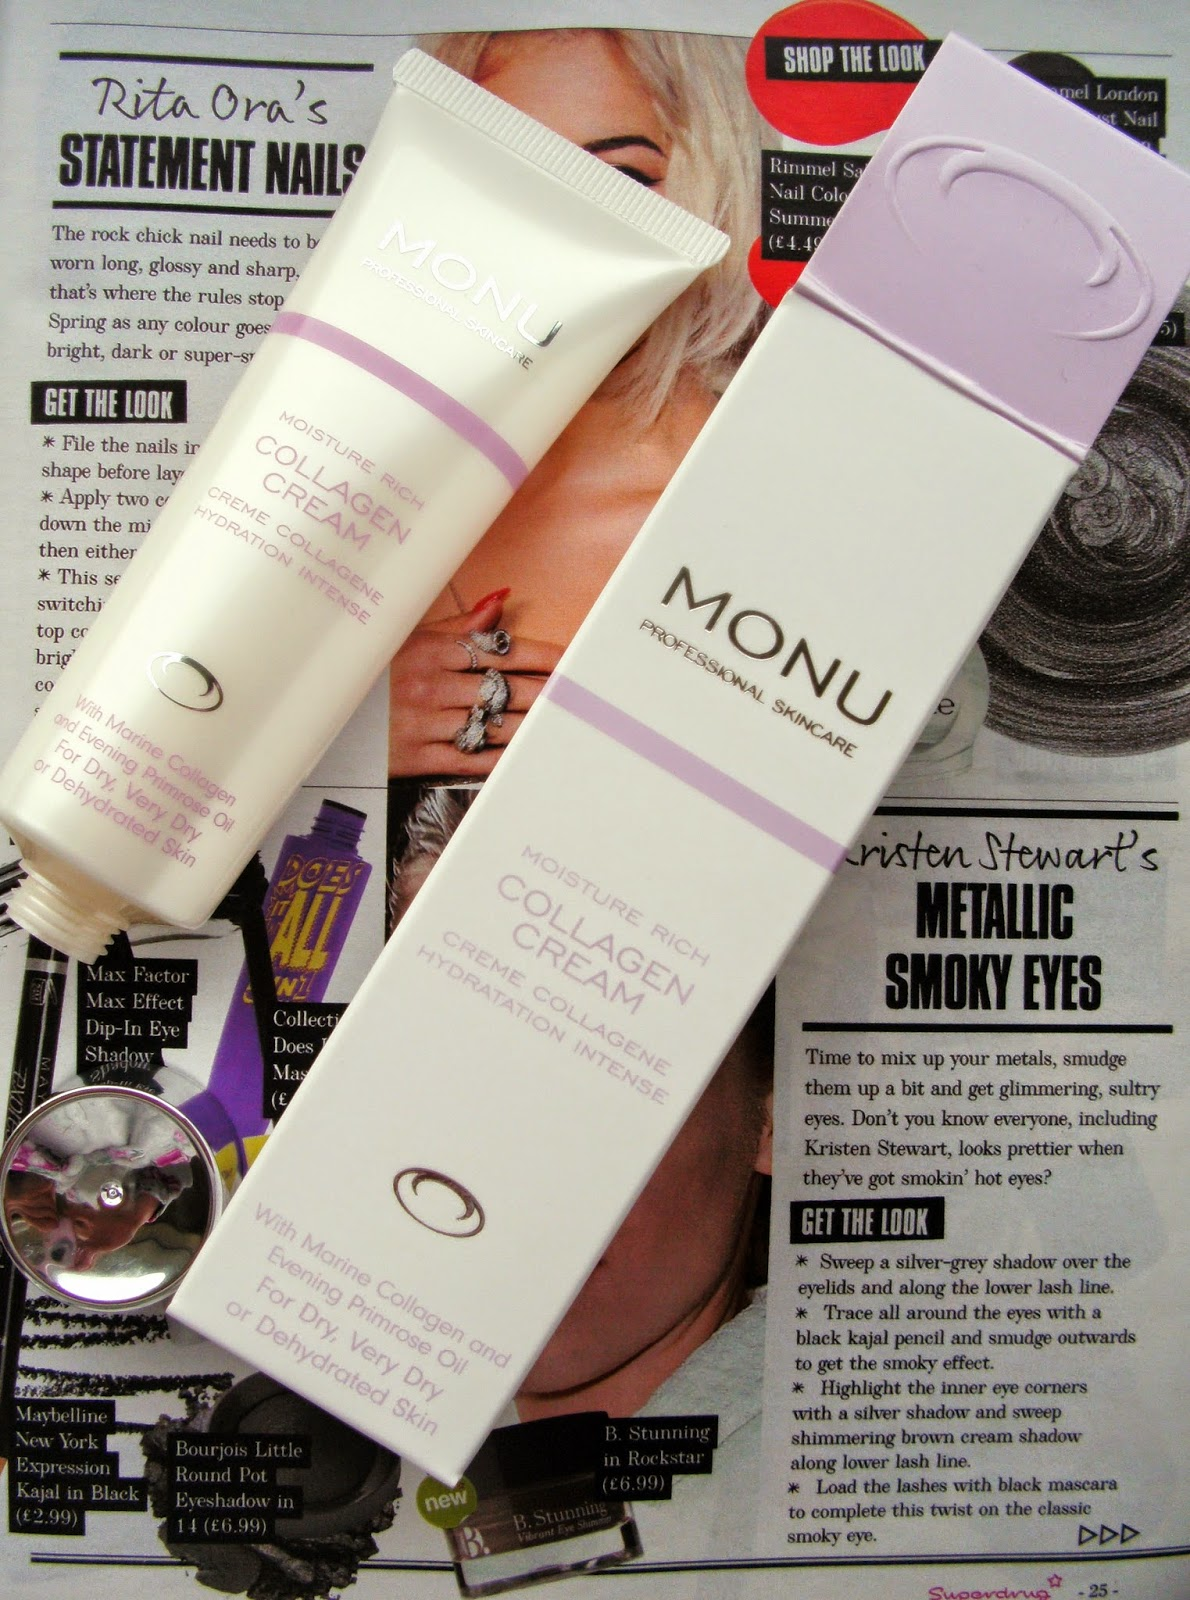 Monu Professional Skincare Moisture Rich Collagen Cream